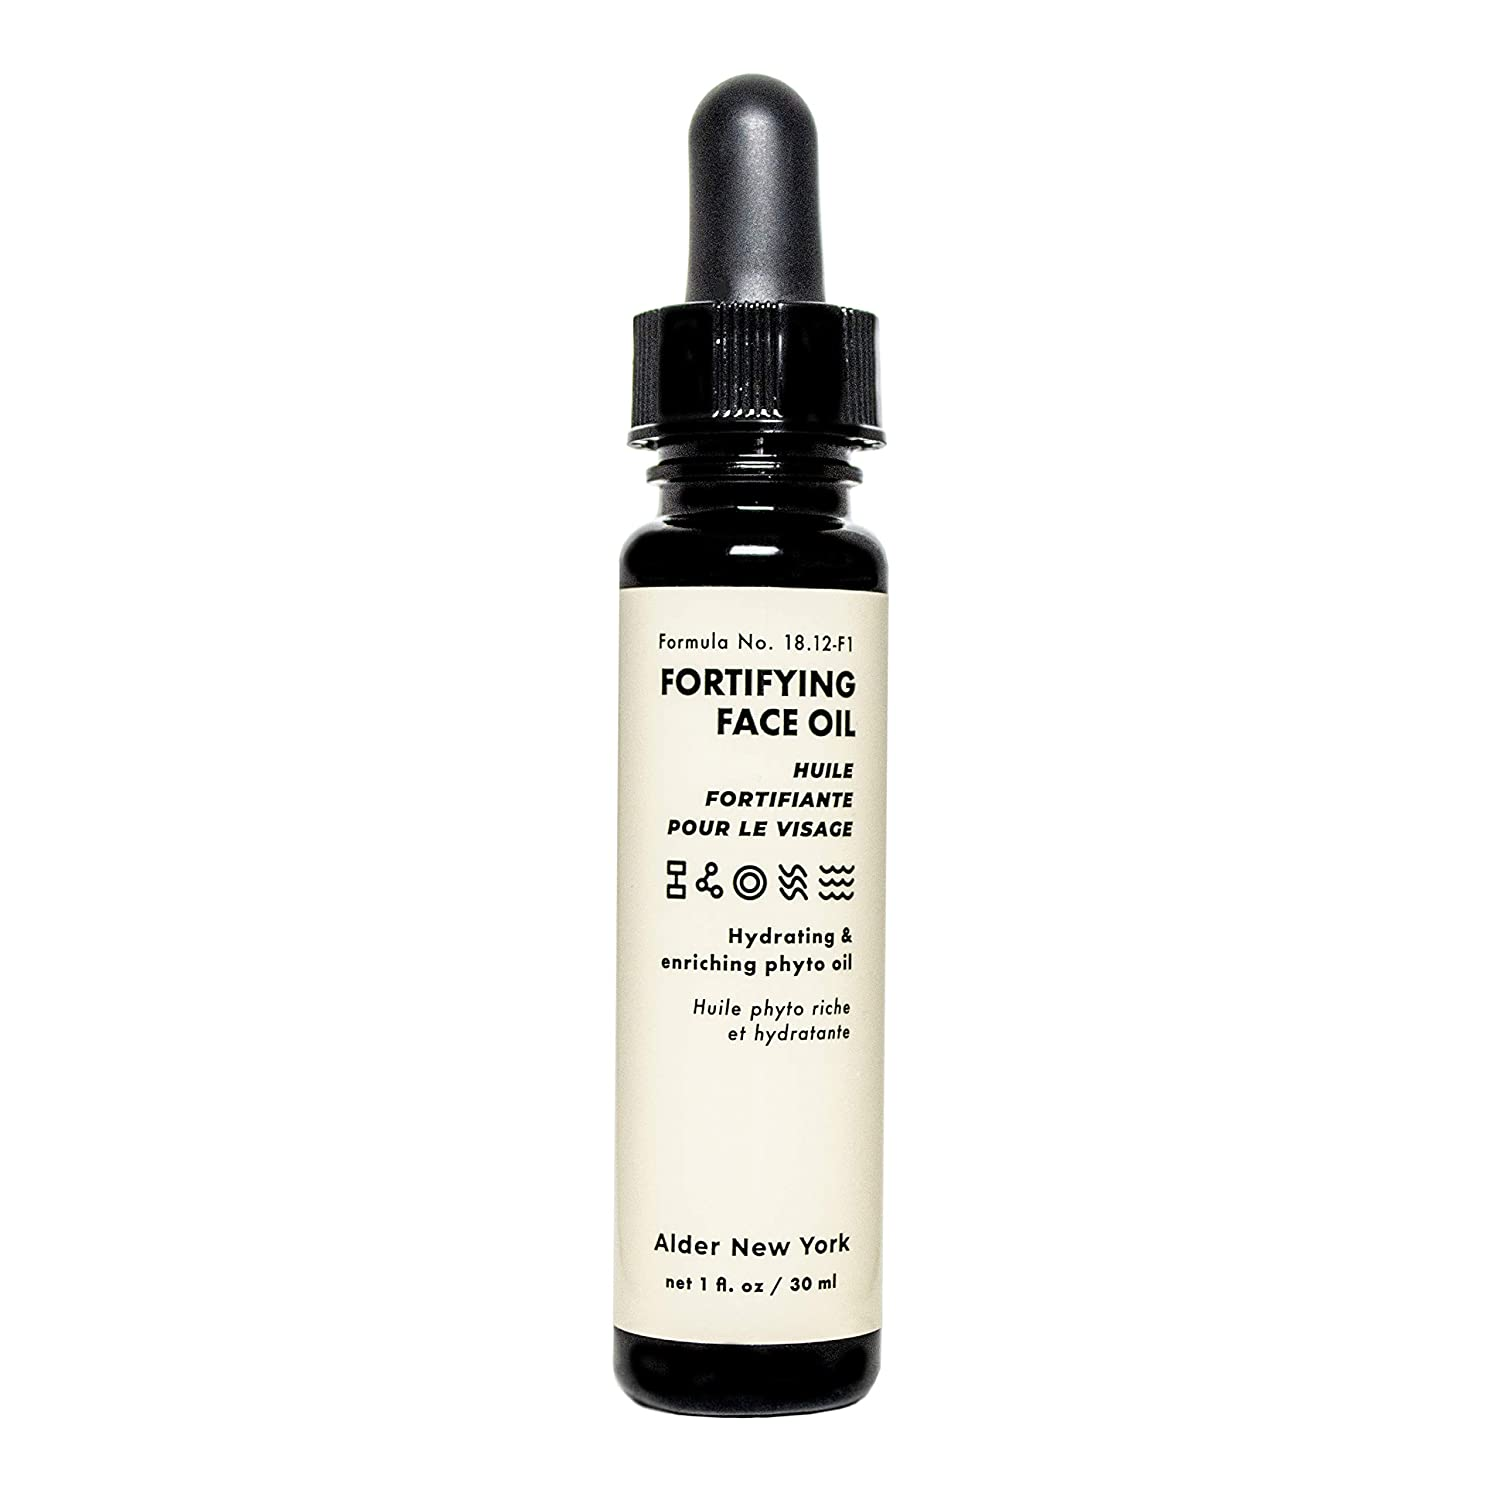 Alder New York Fortifying Face Oil- Hydrates & Enriches with Plant Squalane & Jojoba Oil